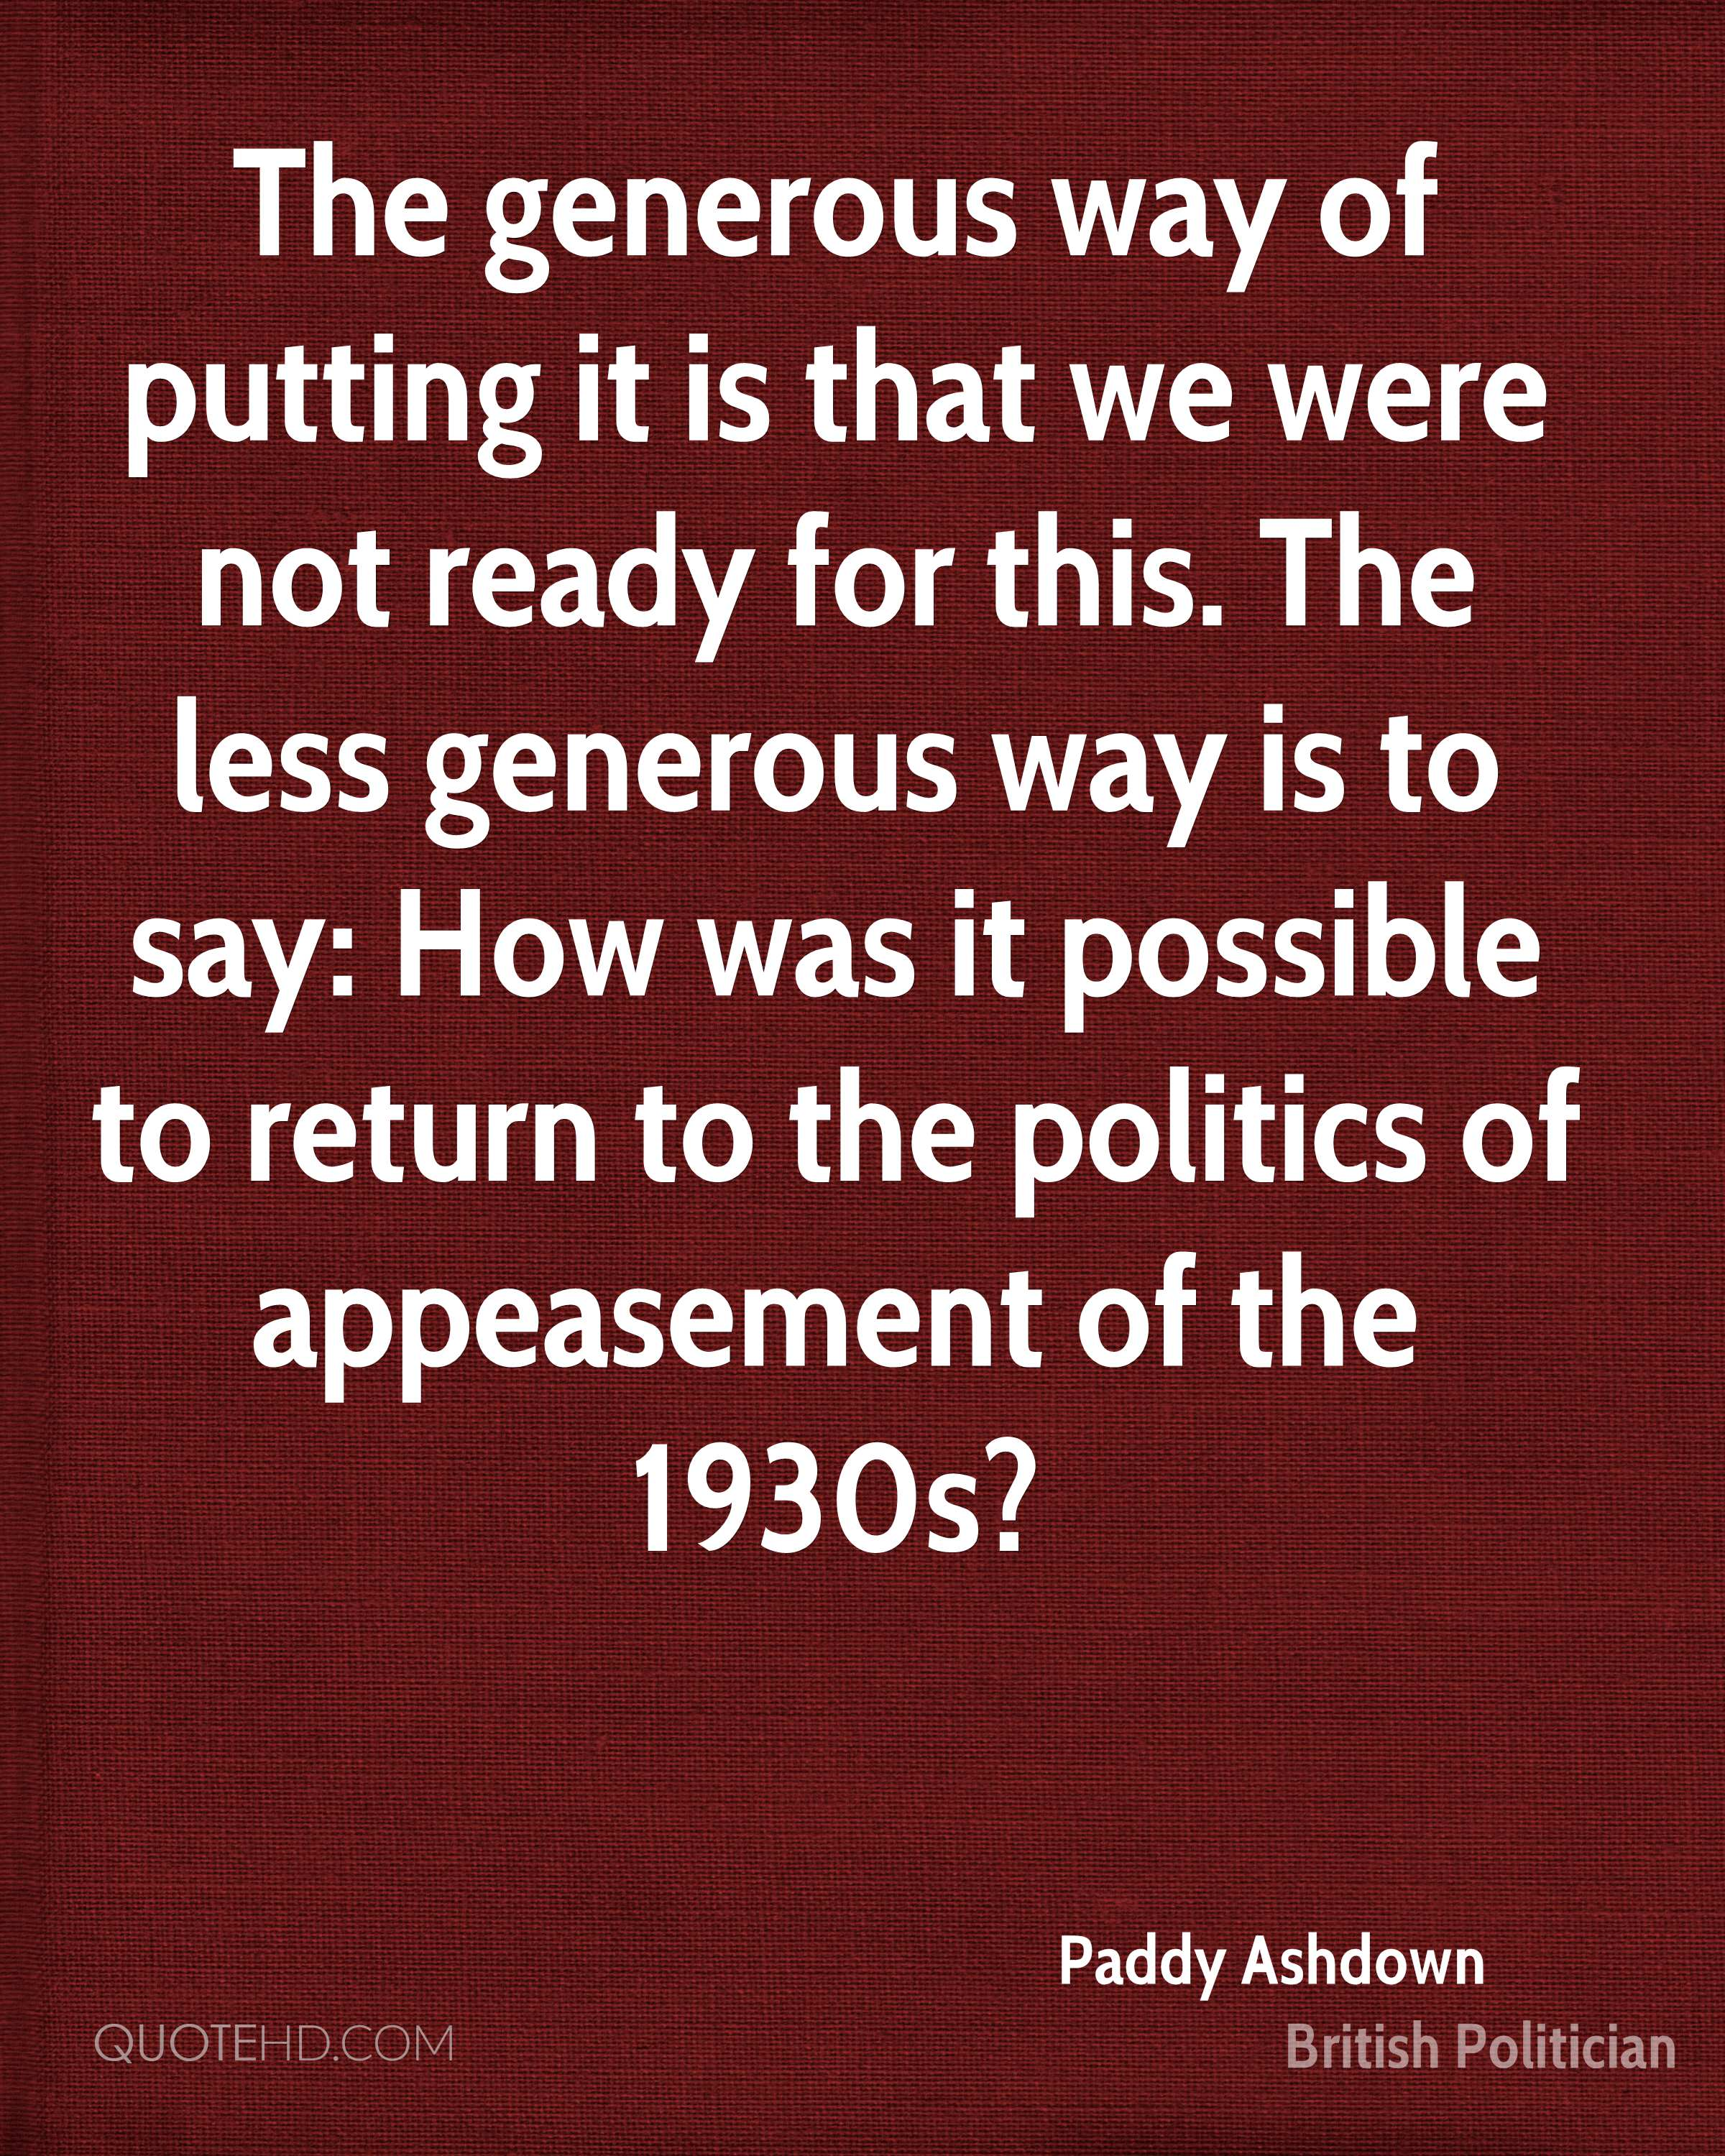 The generous way of putting it is that we were not ready for this. The less generous way is to say: How was it possible to return to the politics of appeasement of the 1930s?